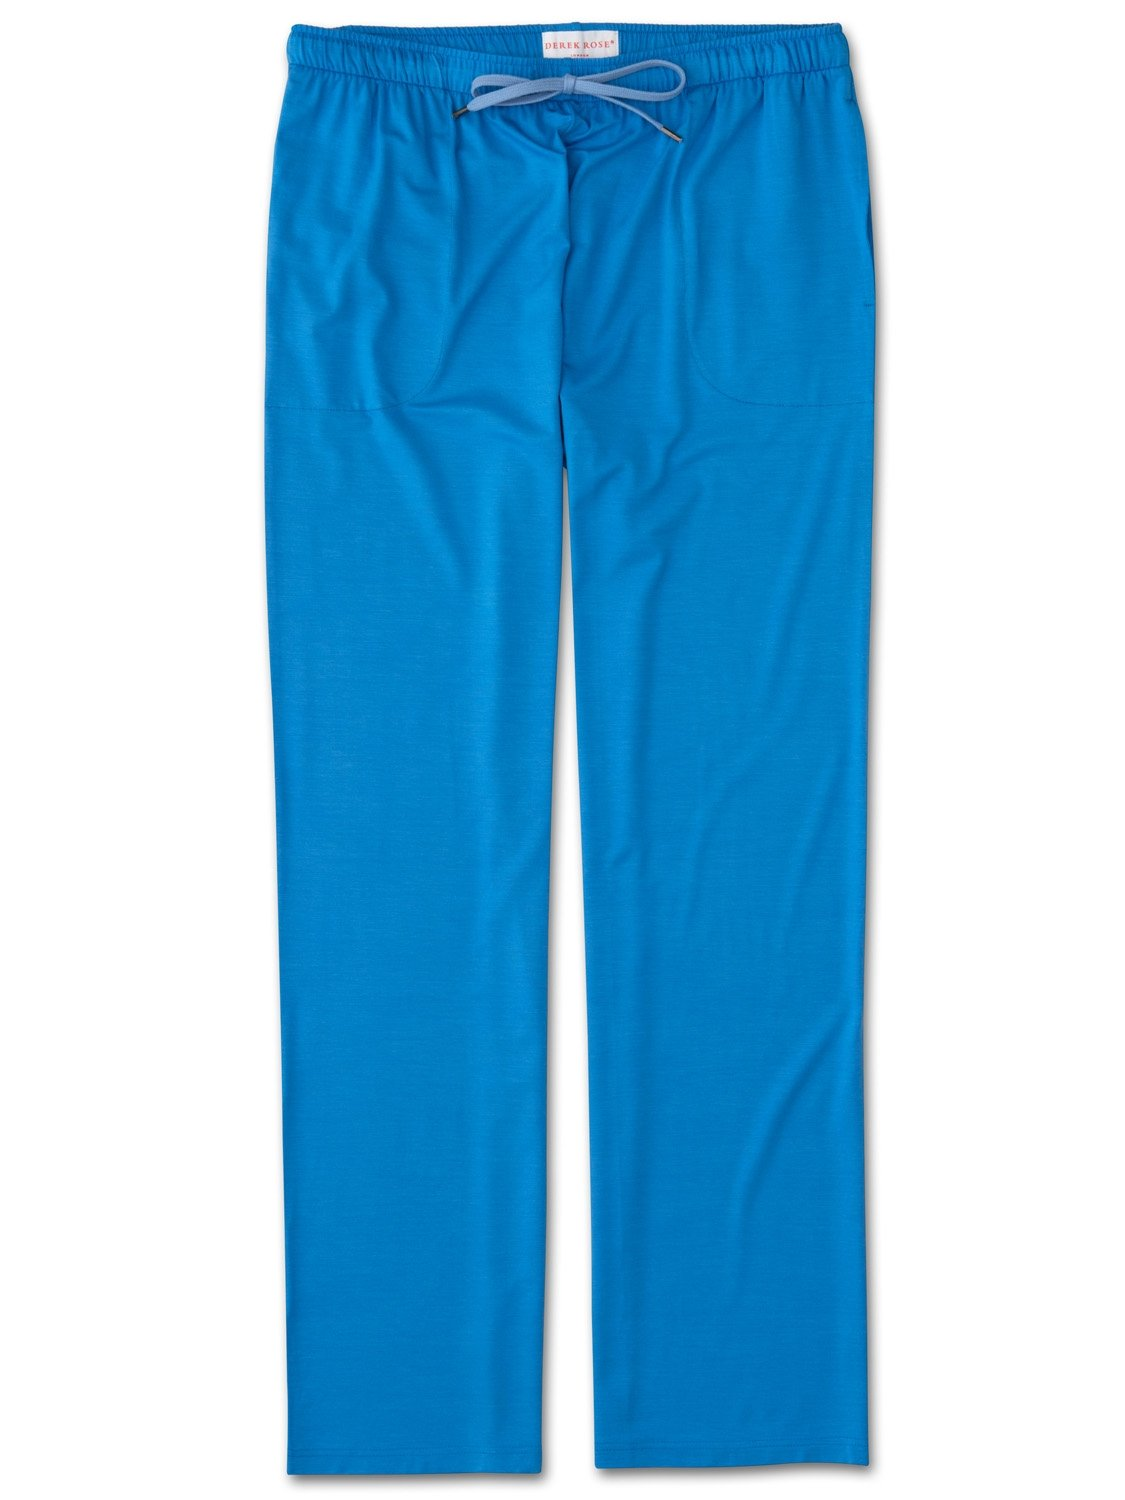 Men's Jersey Trousers Basel 4 Micro Modal Stretch Blue